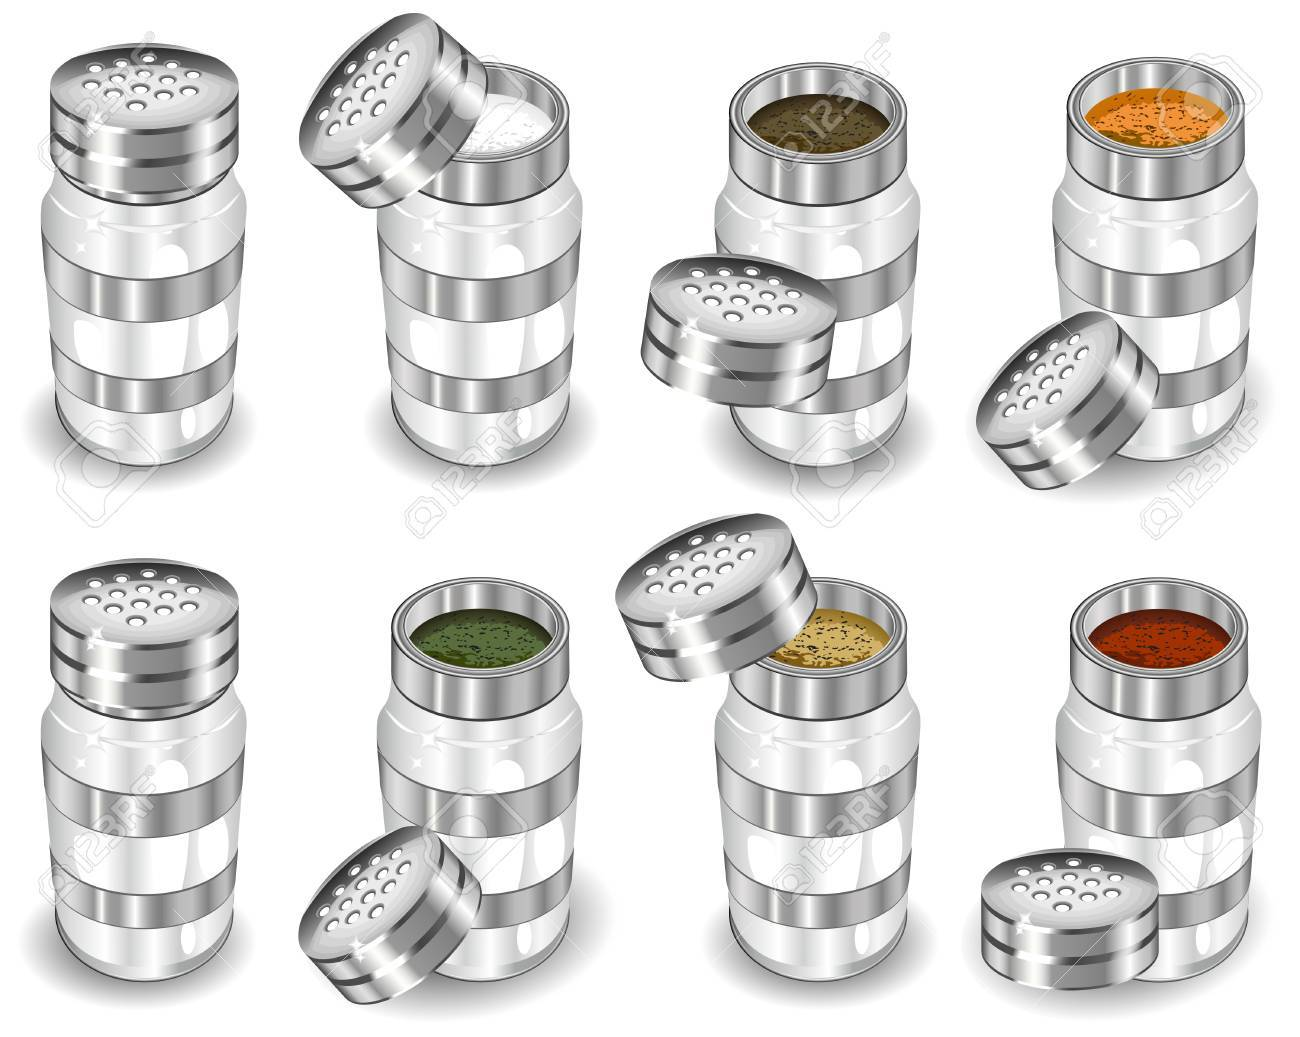 Capacities with spices, salt and pepper shaker, vector illustration on white background Stock Vector - 4605617